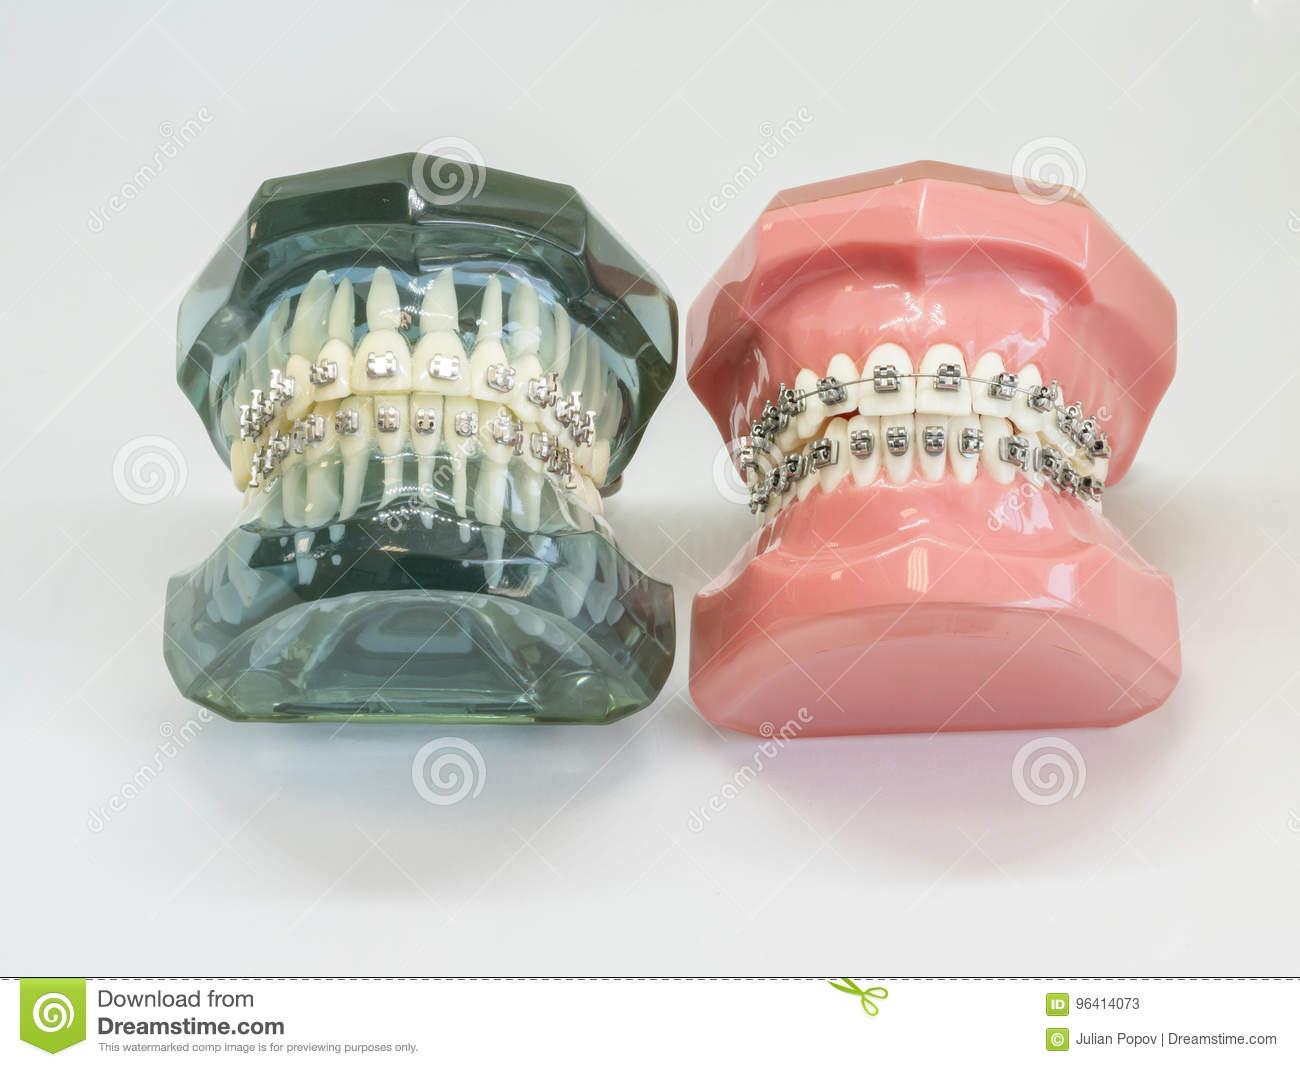 Miraculous Artificial Model Of Human Jaw With Wire Colorful Braces Attached Wiring 101 Orsalhahutechinfo